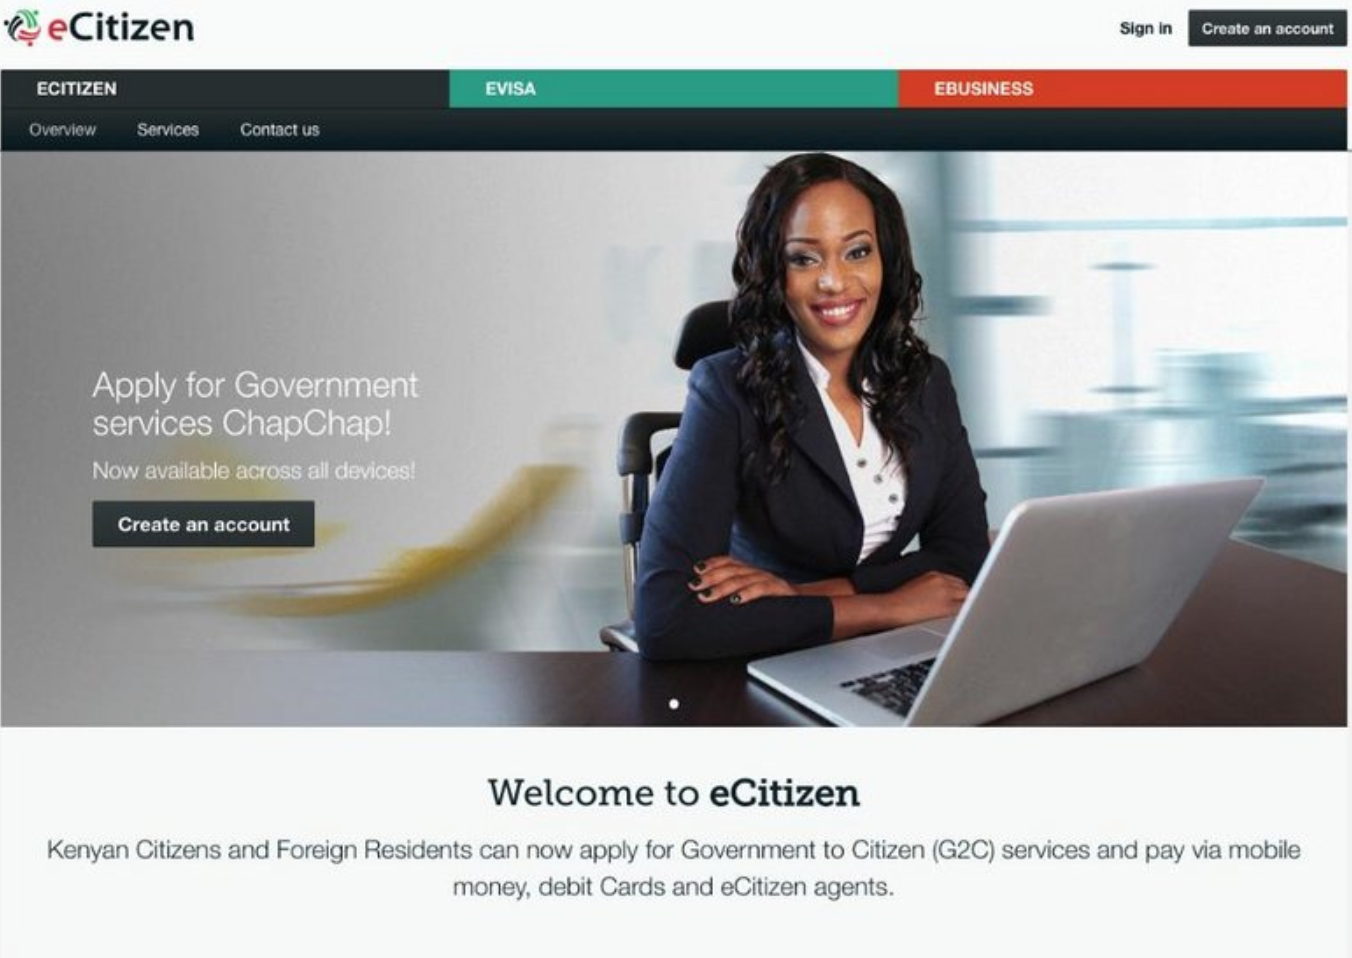 Treasury knew we were collecting funds, firm says in eCitizen suit